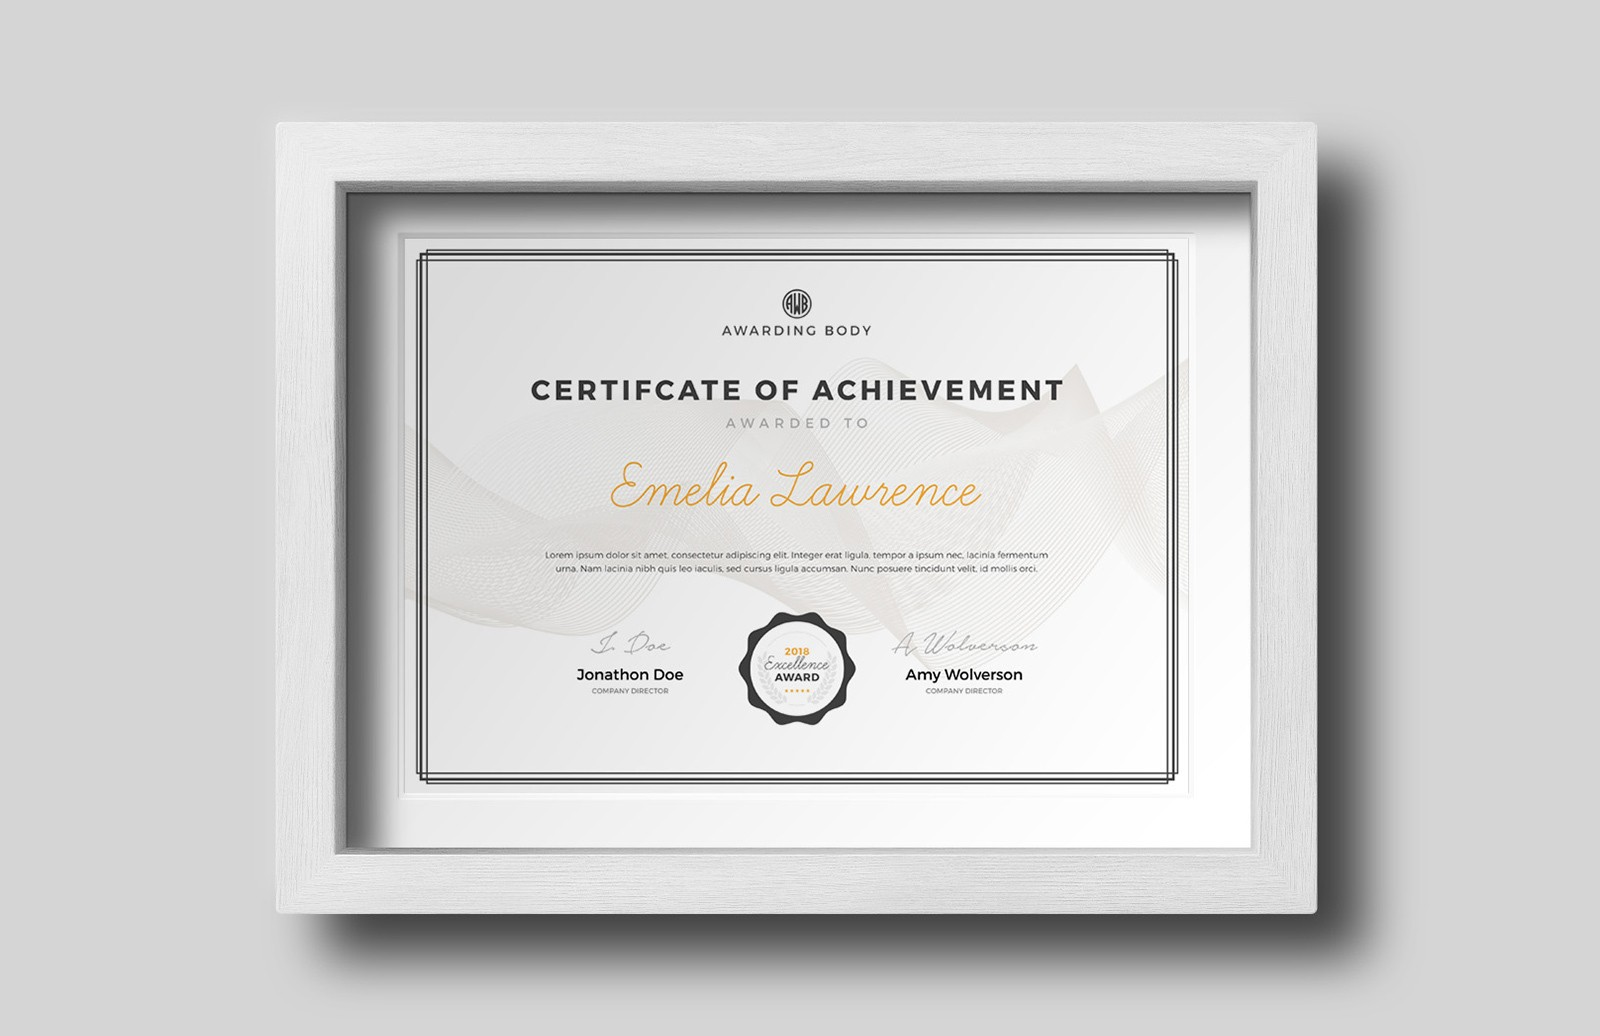 Award Certificate Template for Photoshop